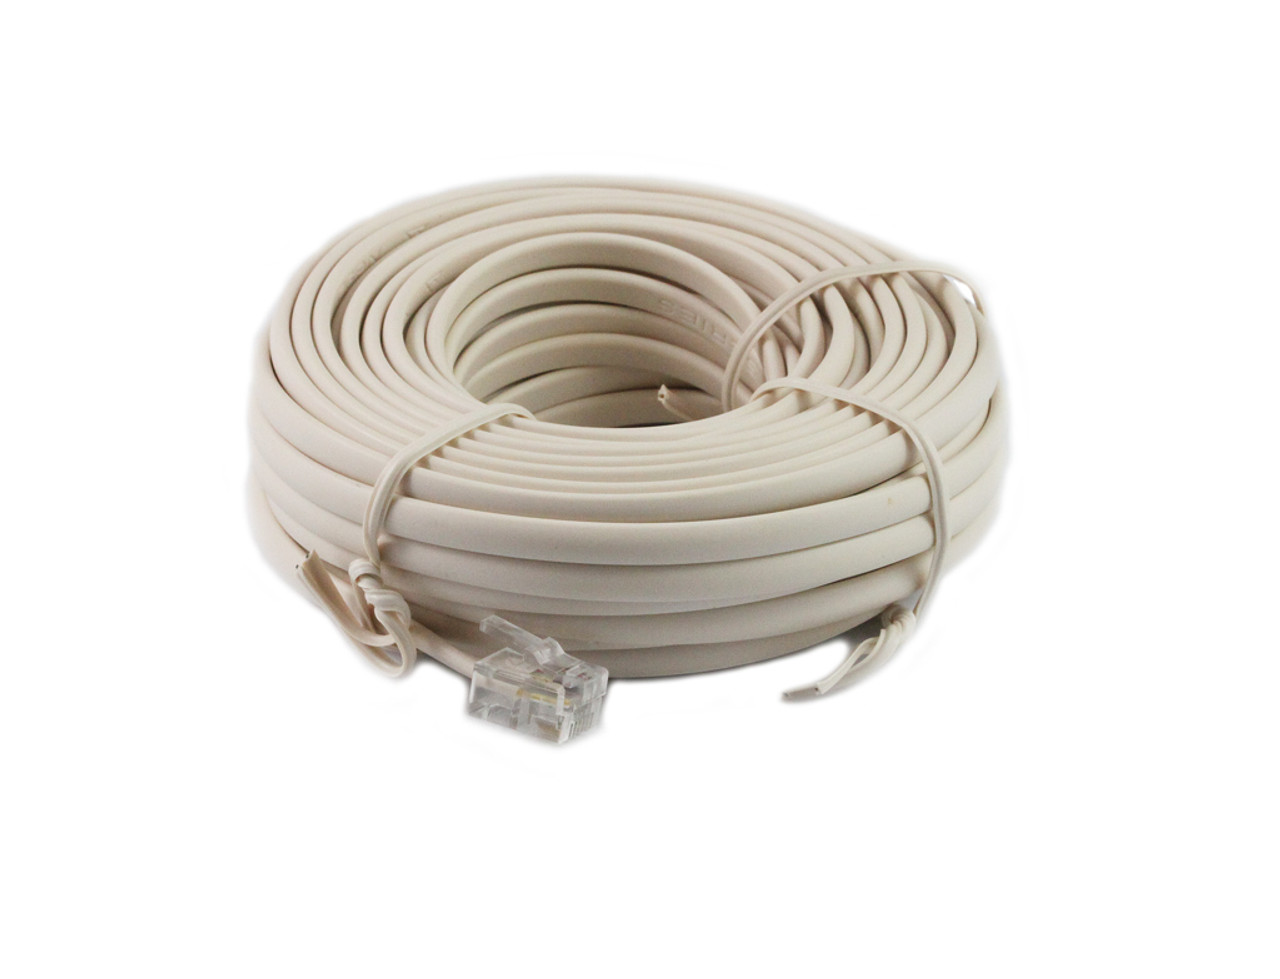 hight resolution of 10m rj11 rj11 telephone cable